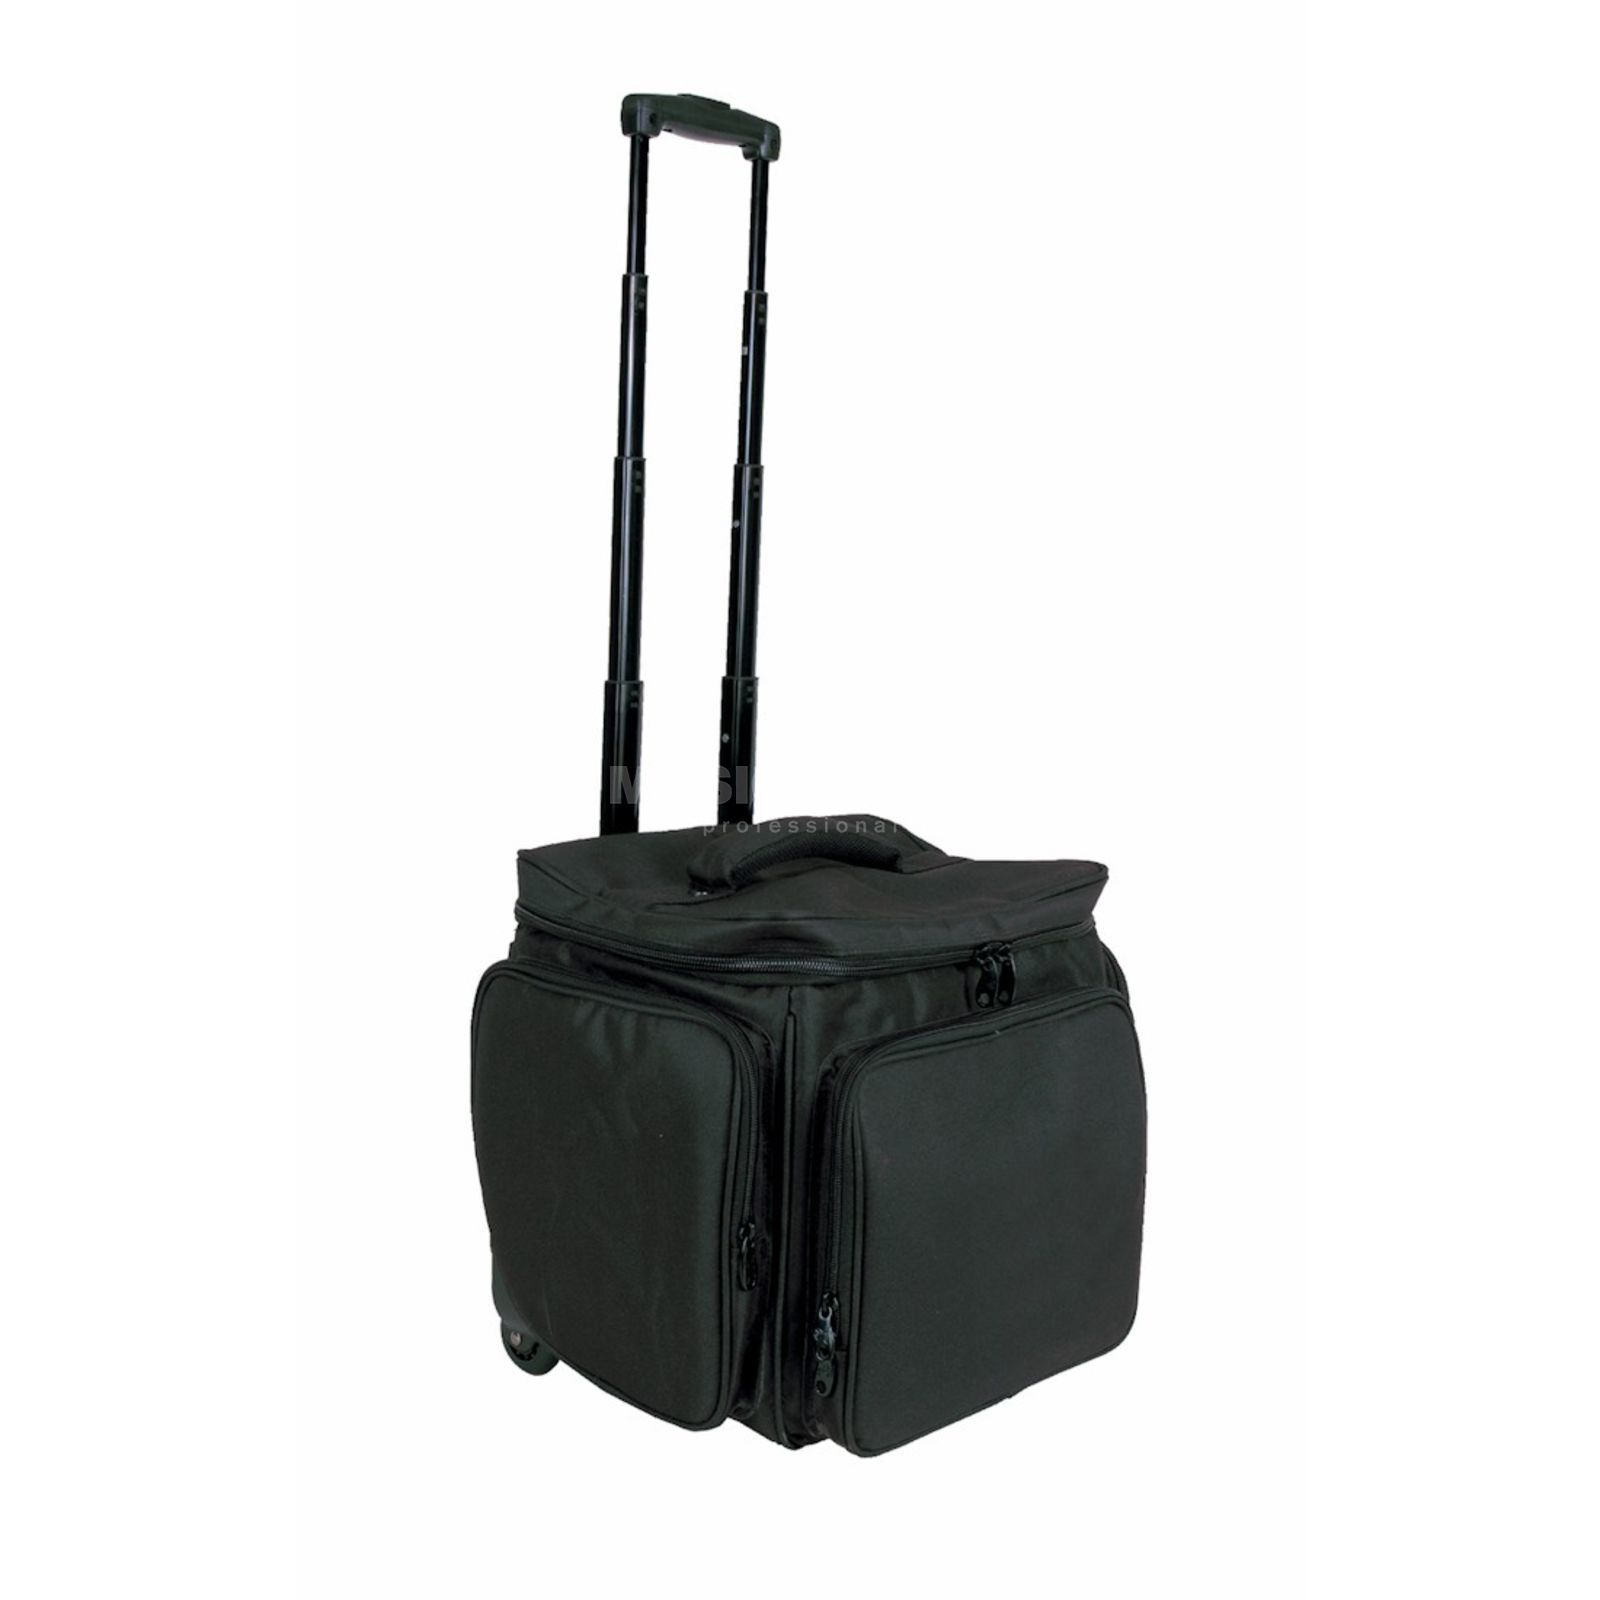 Accu Case ASC-AL-60 LP Bag f. 50 LPs, 330 x 330 x 203 mm Produktbild